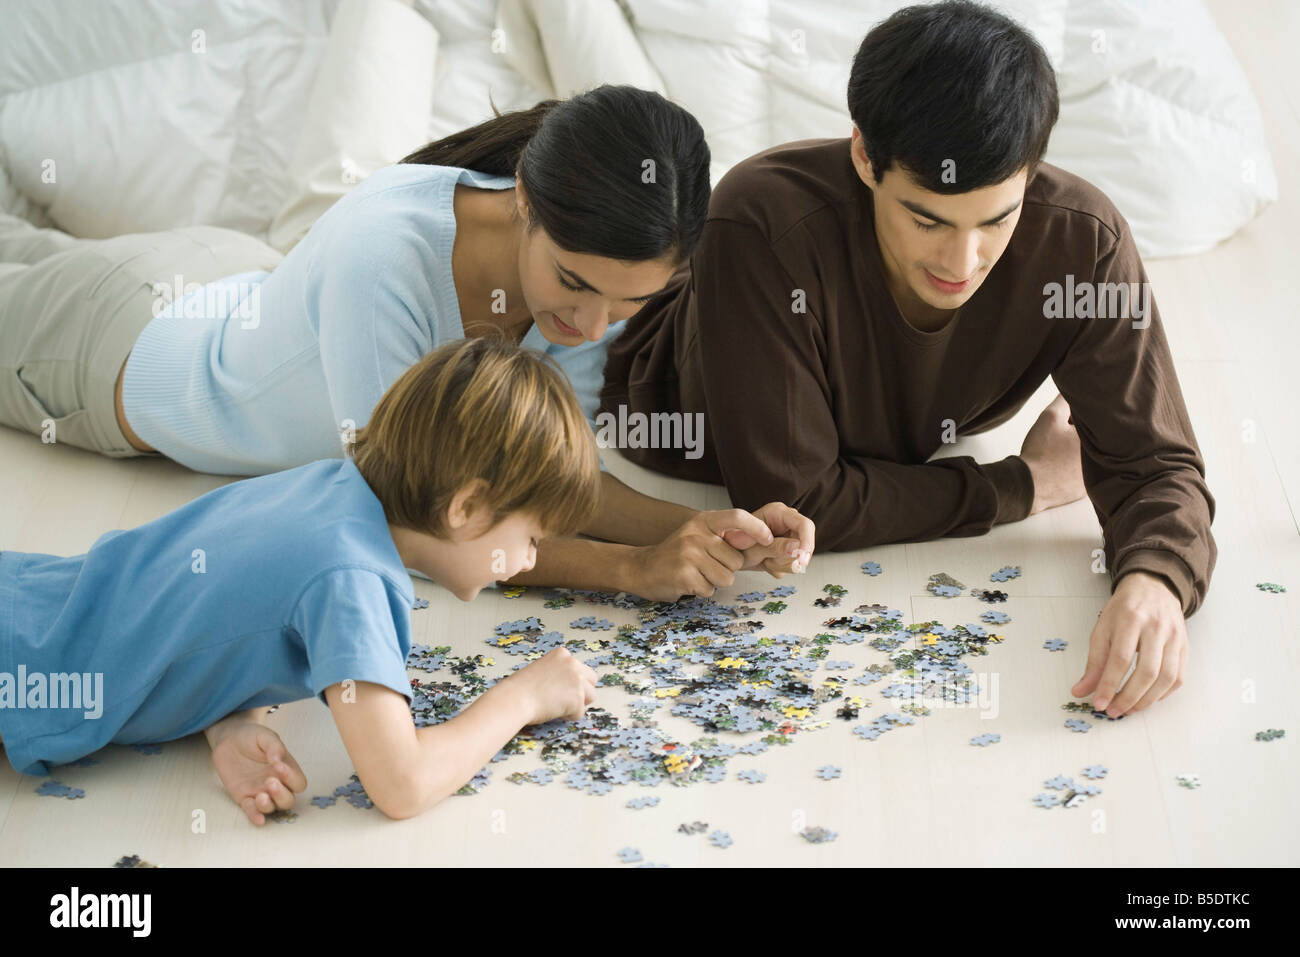 Family lying on floor, putting together jigsaw puzzle - Stock Image